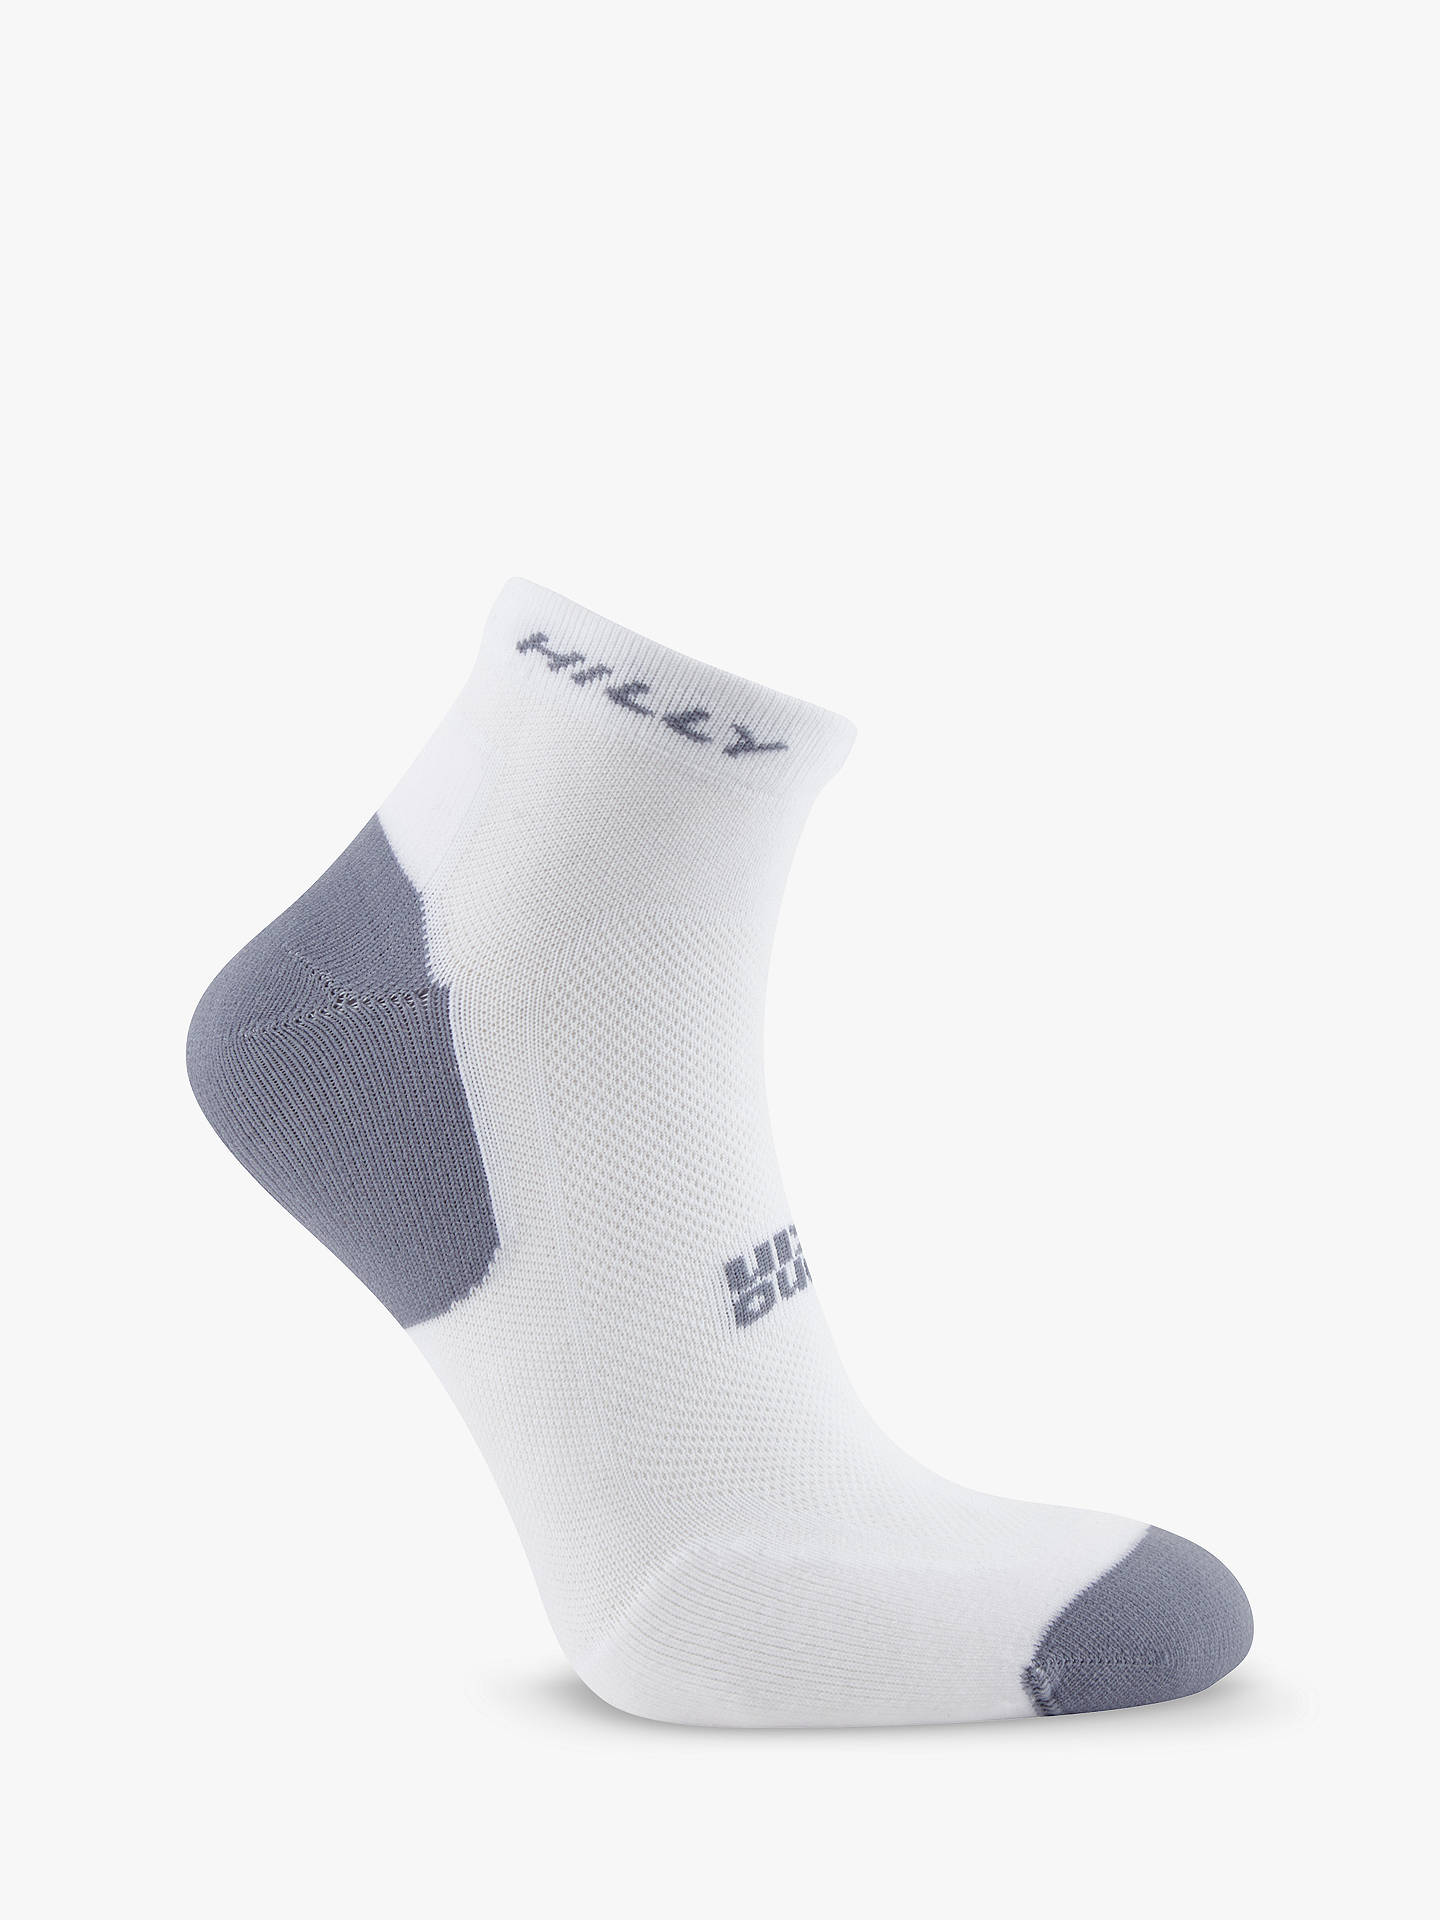 Buy Hilly Tempo Quarter Running Socks, Pack of 2, White, S Online at johnlewis.com